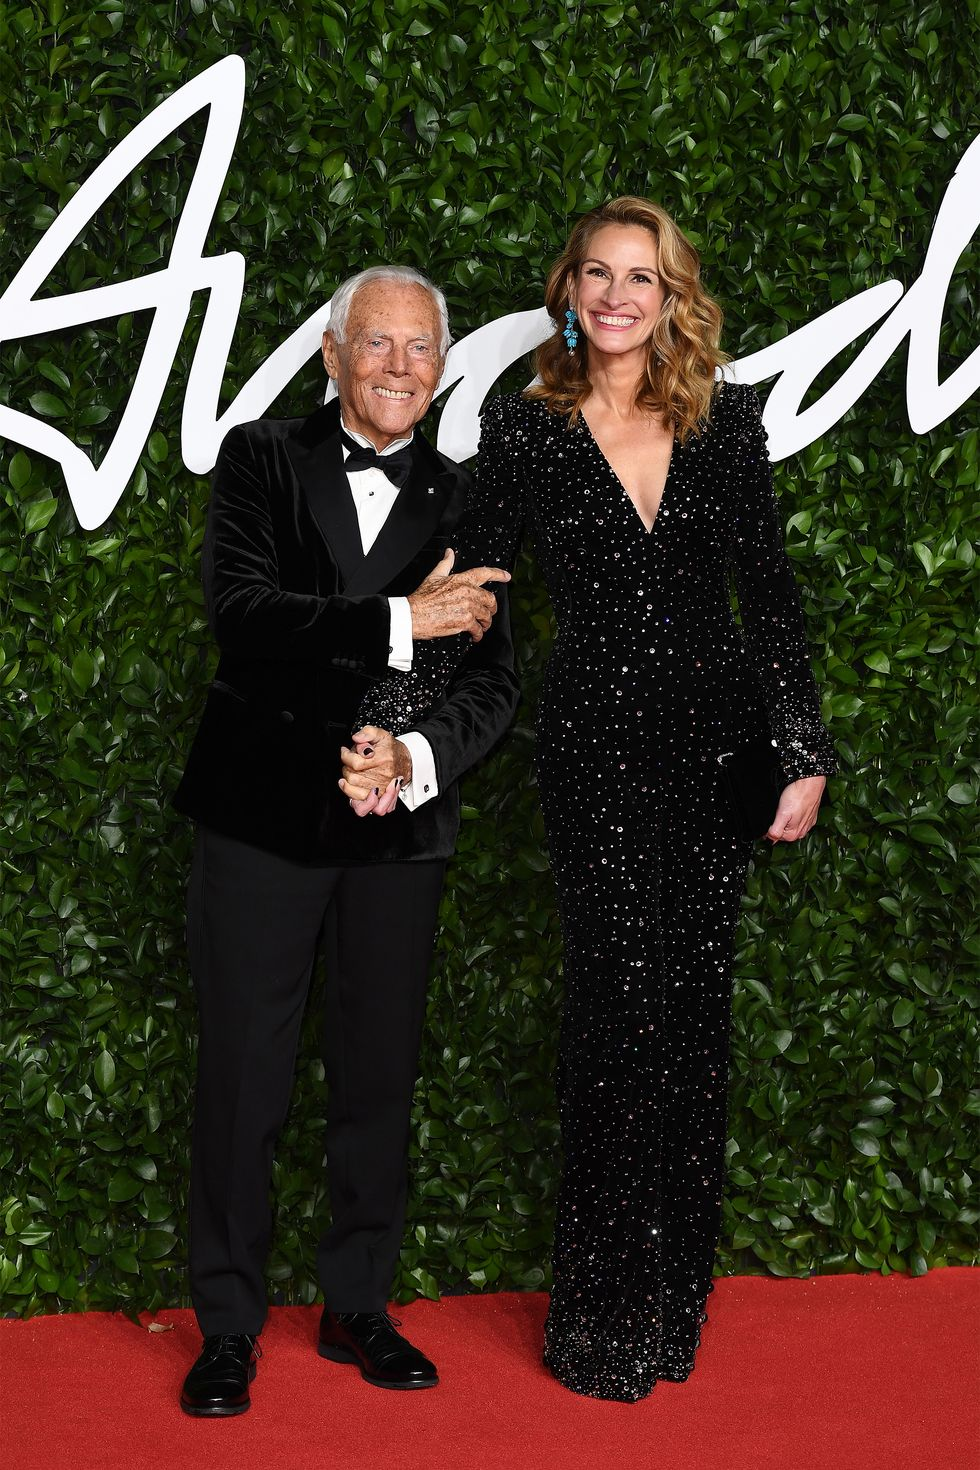 hbz-fashion-awards-2019-giorgio-armani-and-julia-roberts-gettyimages-1191495999